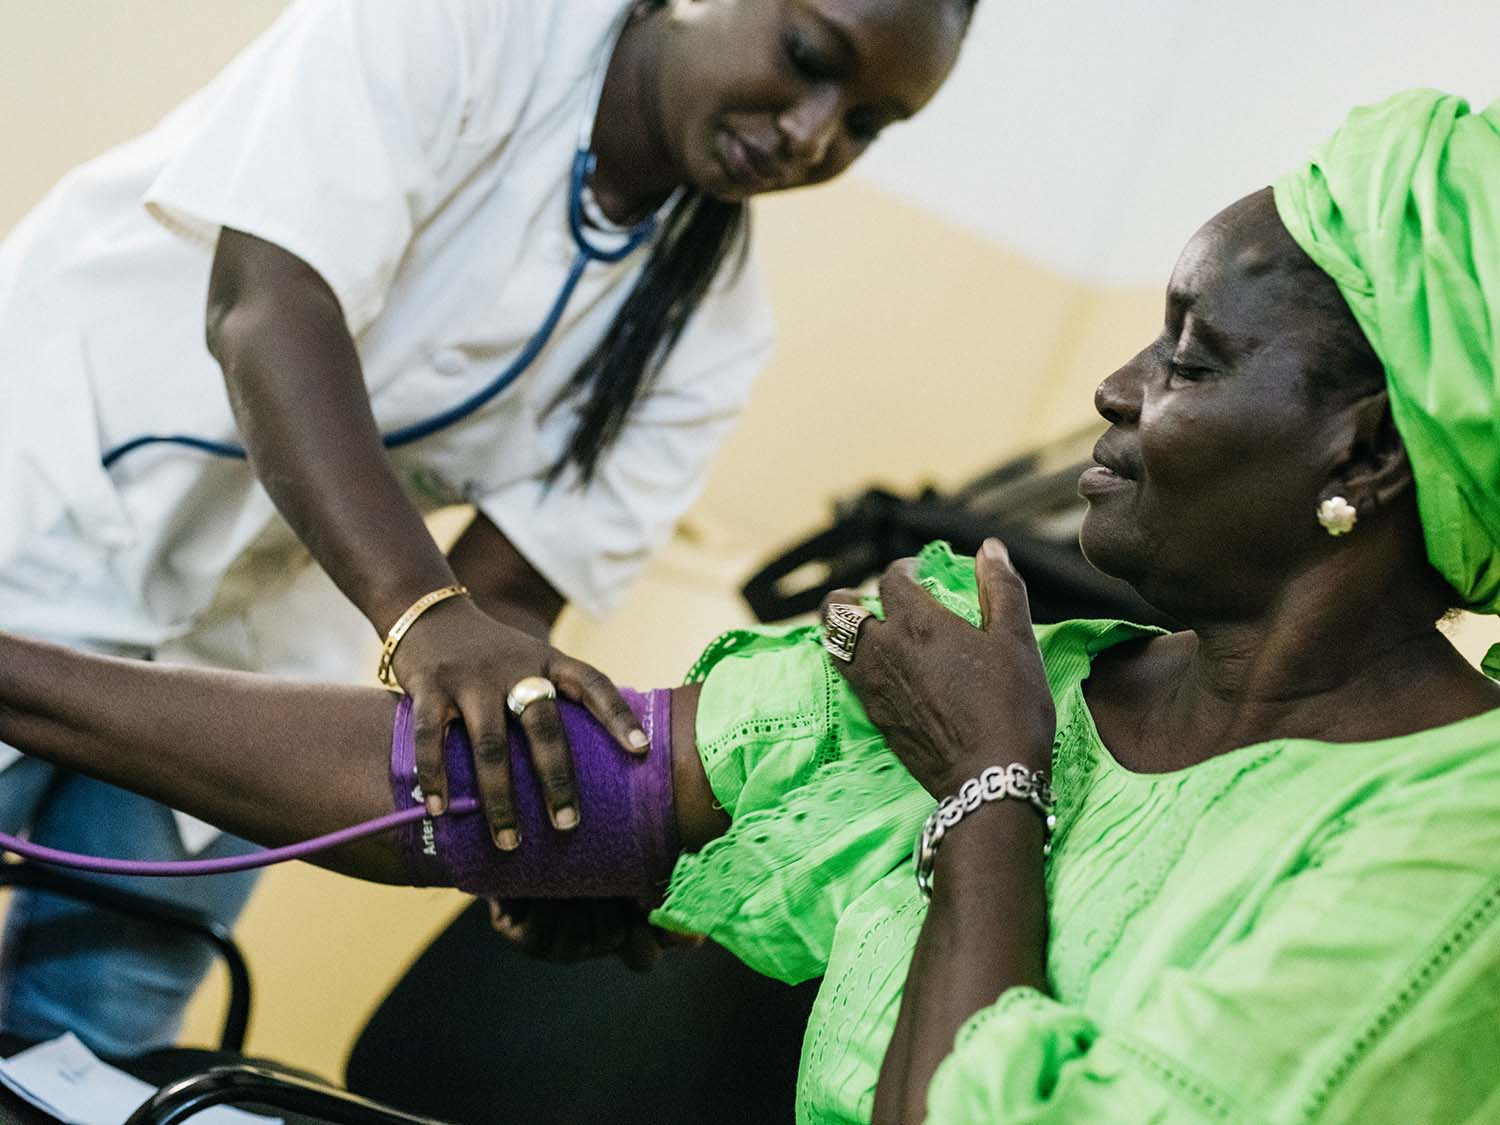 Doctor completing a blood pressure check on a patient